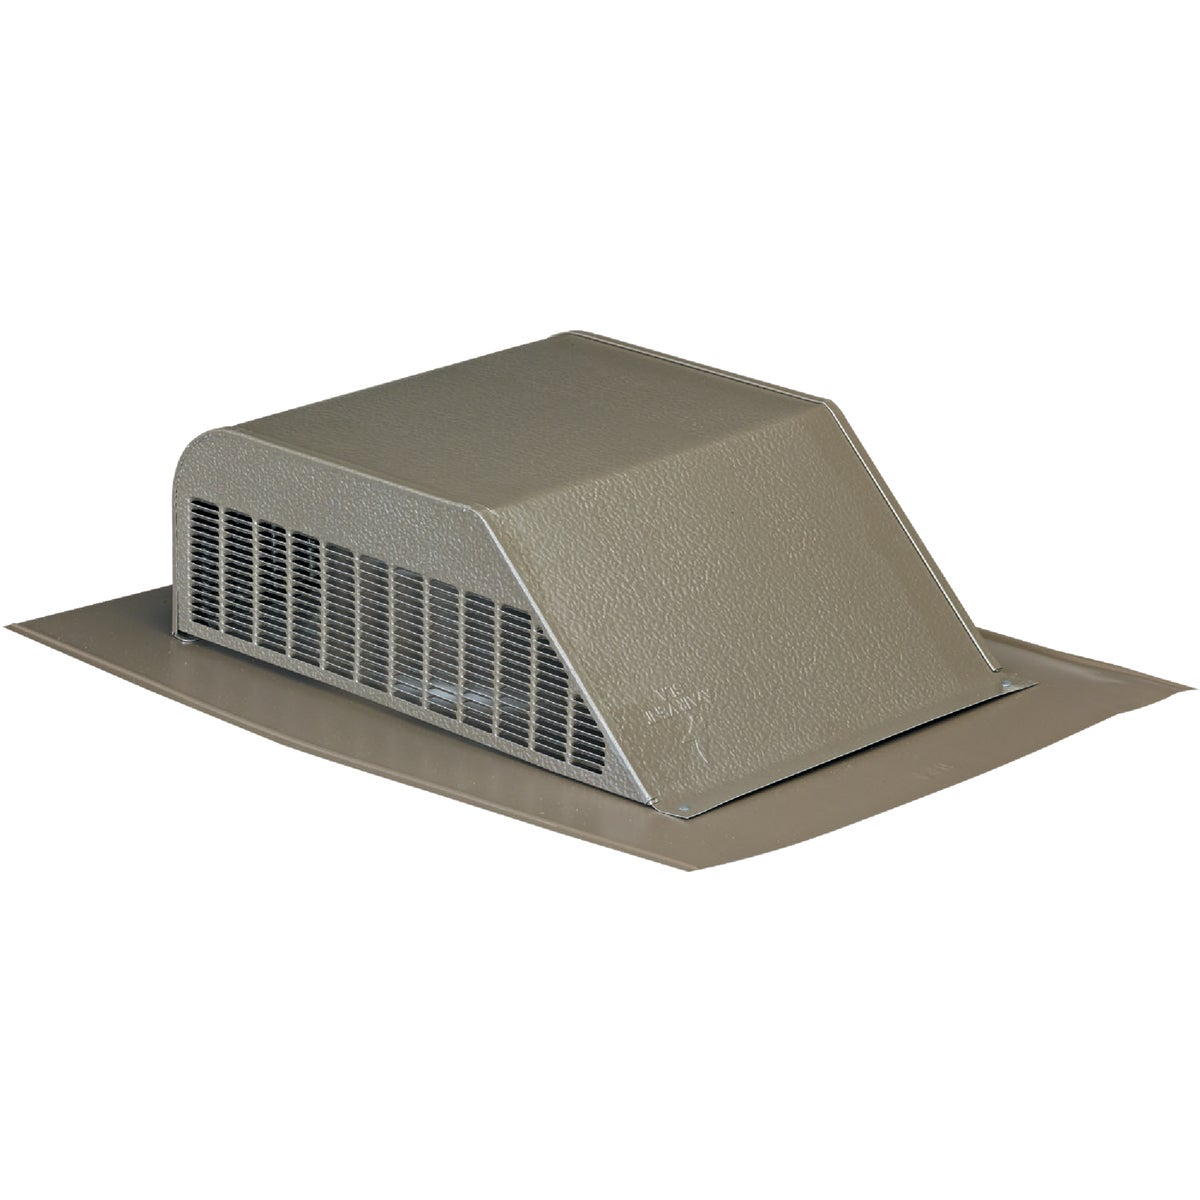 "50""WWD GAV S/B ROOF VENT - RVG550G6 by Air Vent Inc"